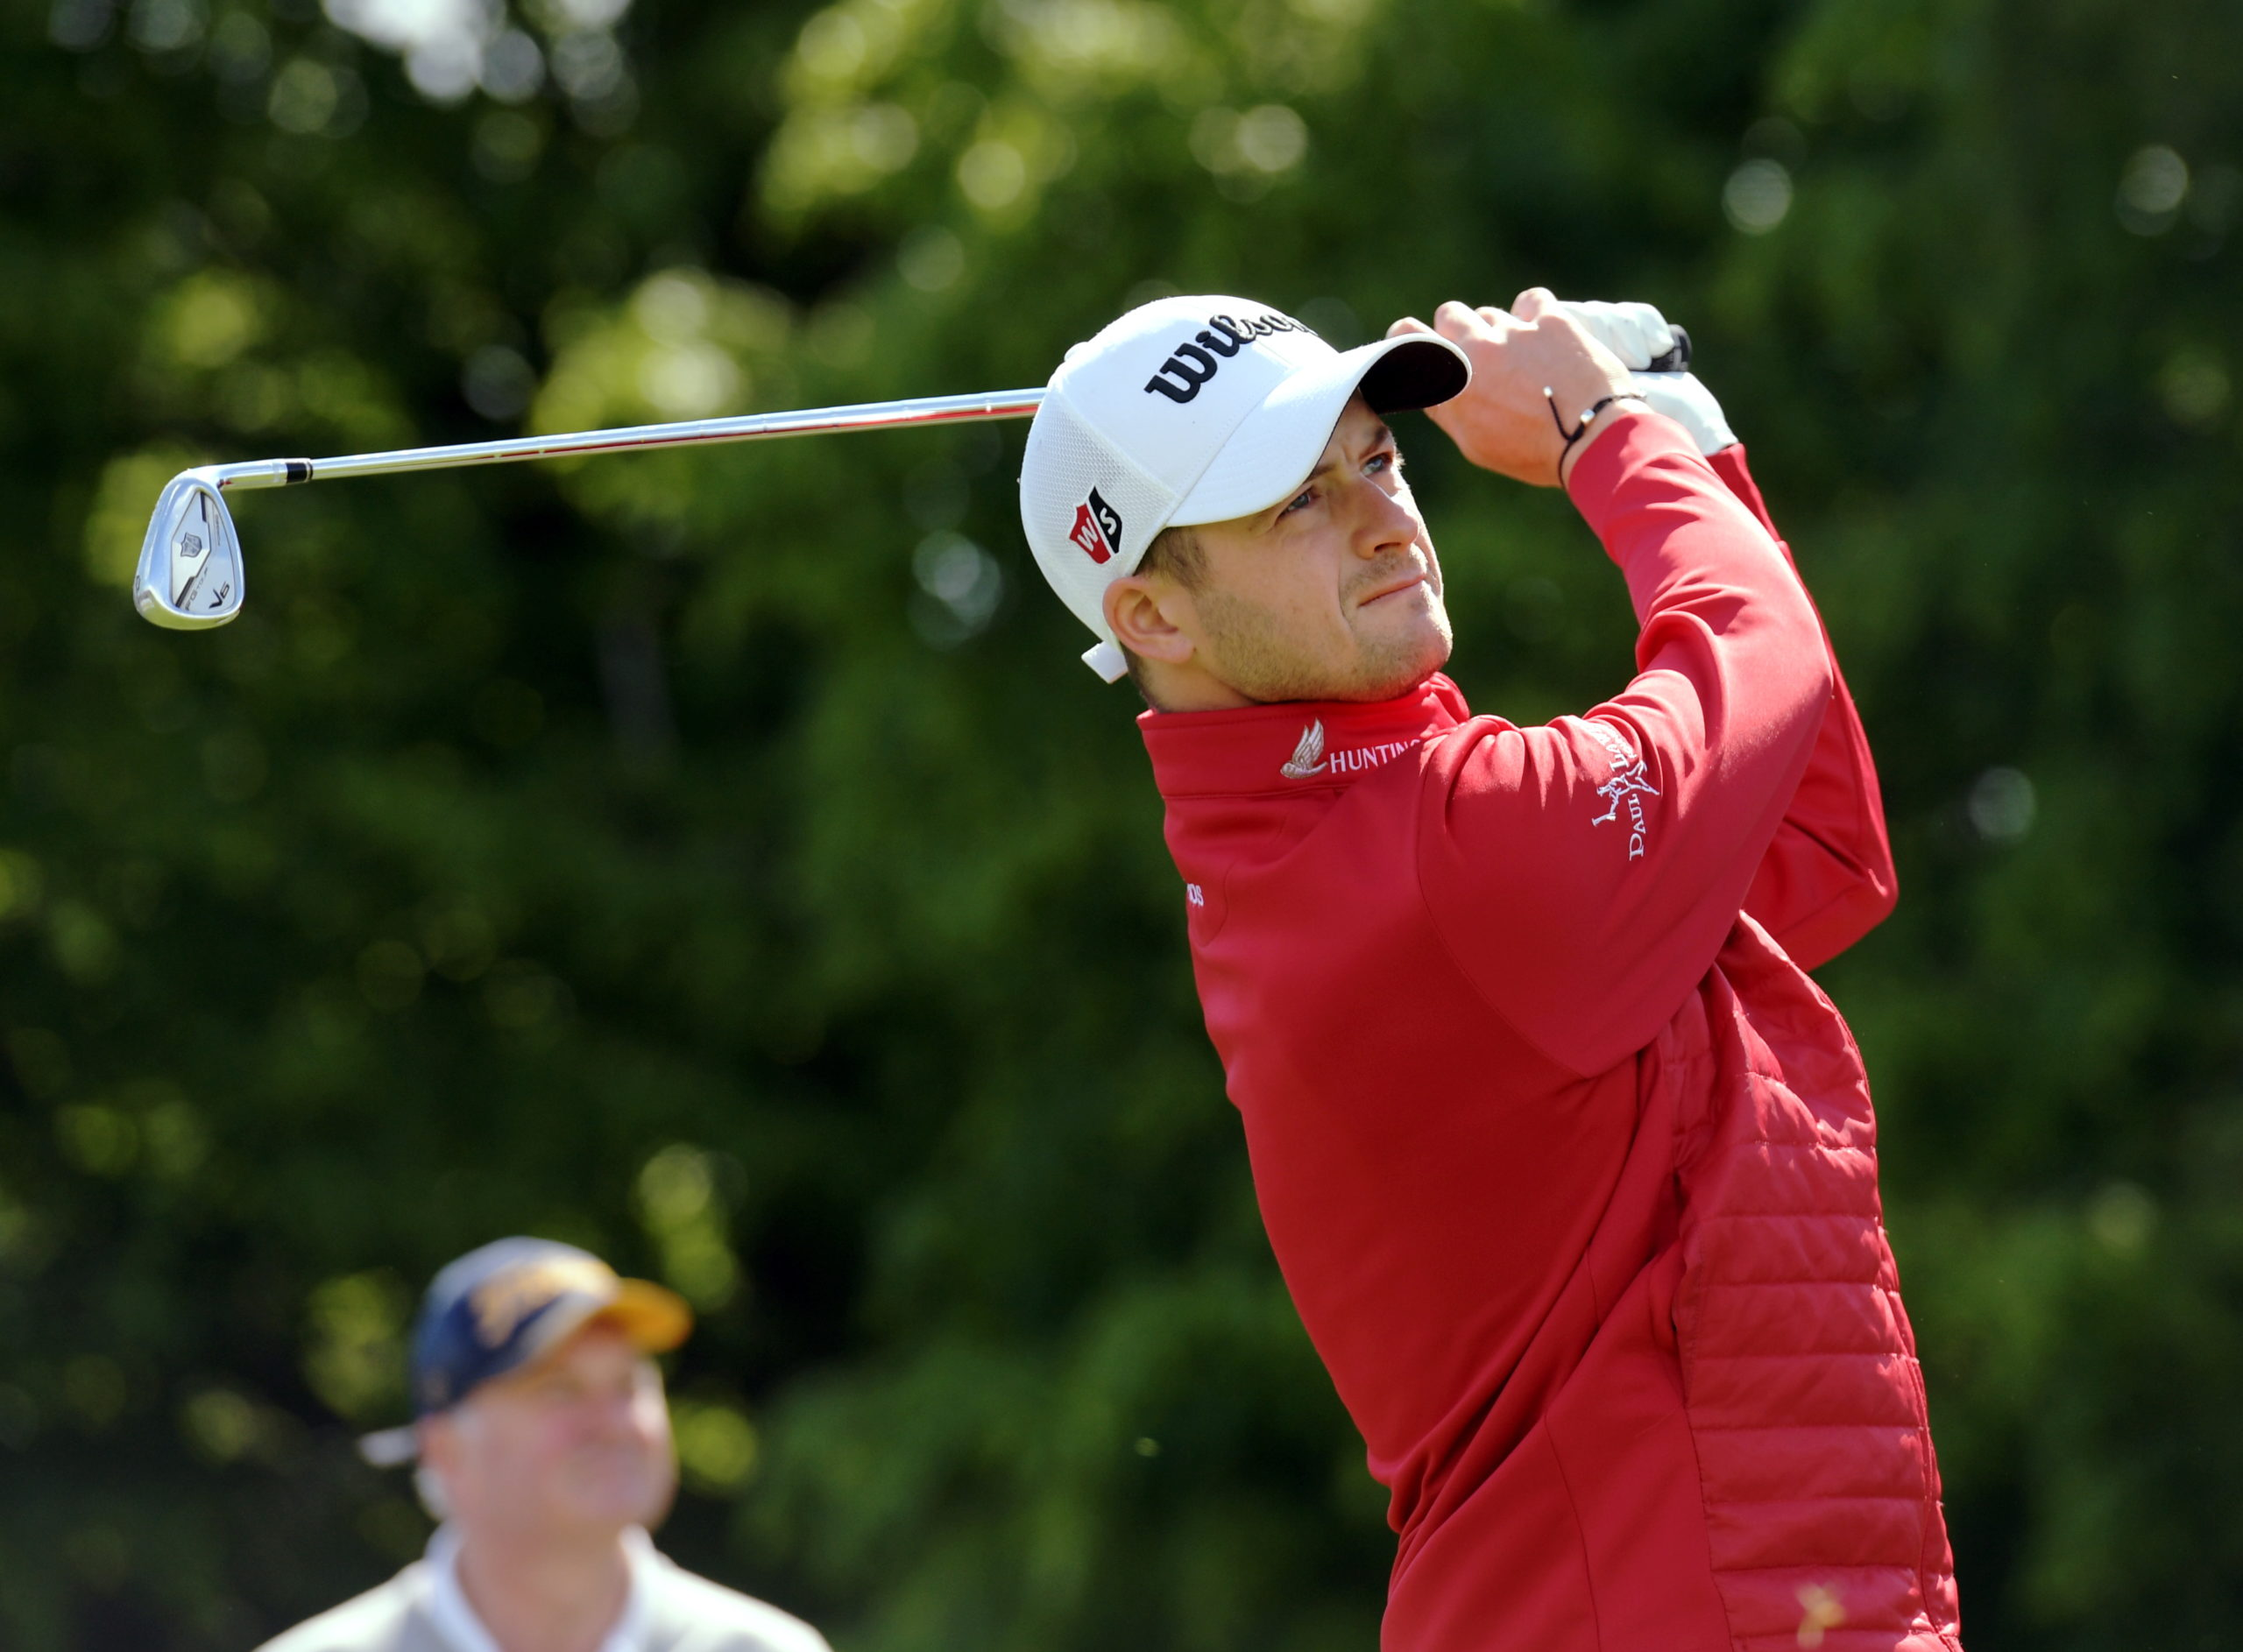 Aberdeen golfer David Law. Picture by Kath Flannery.